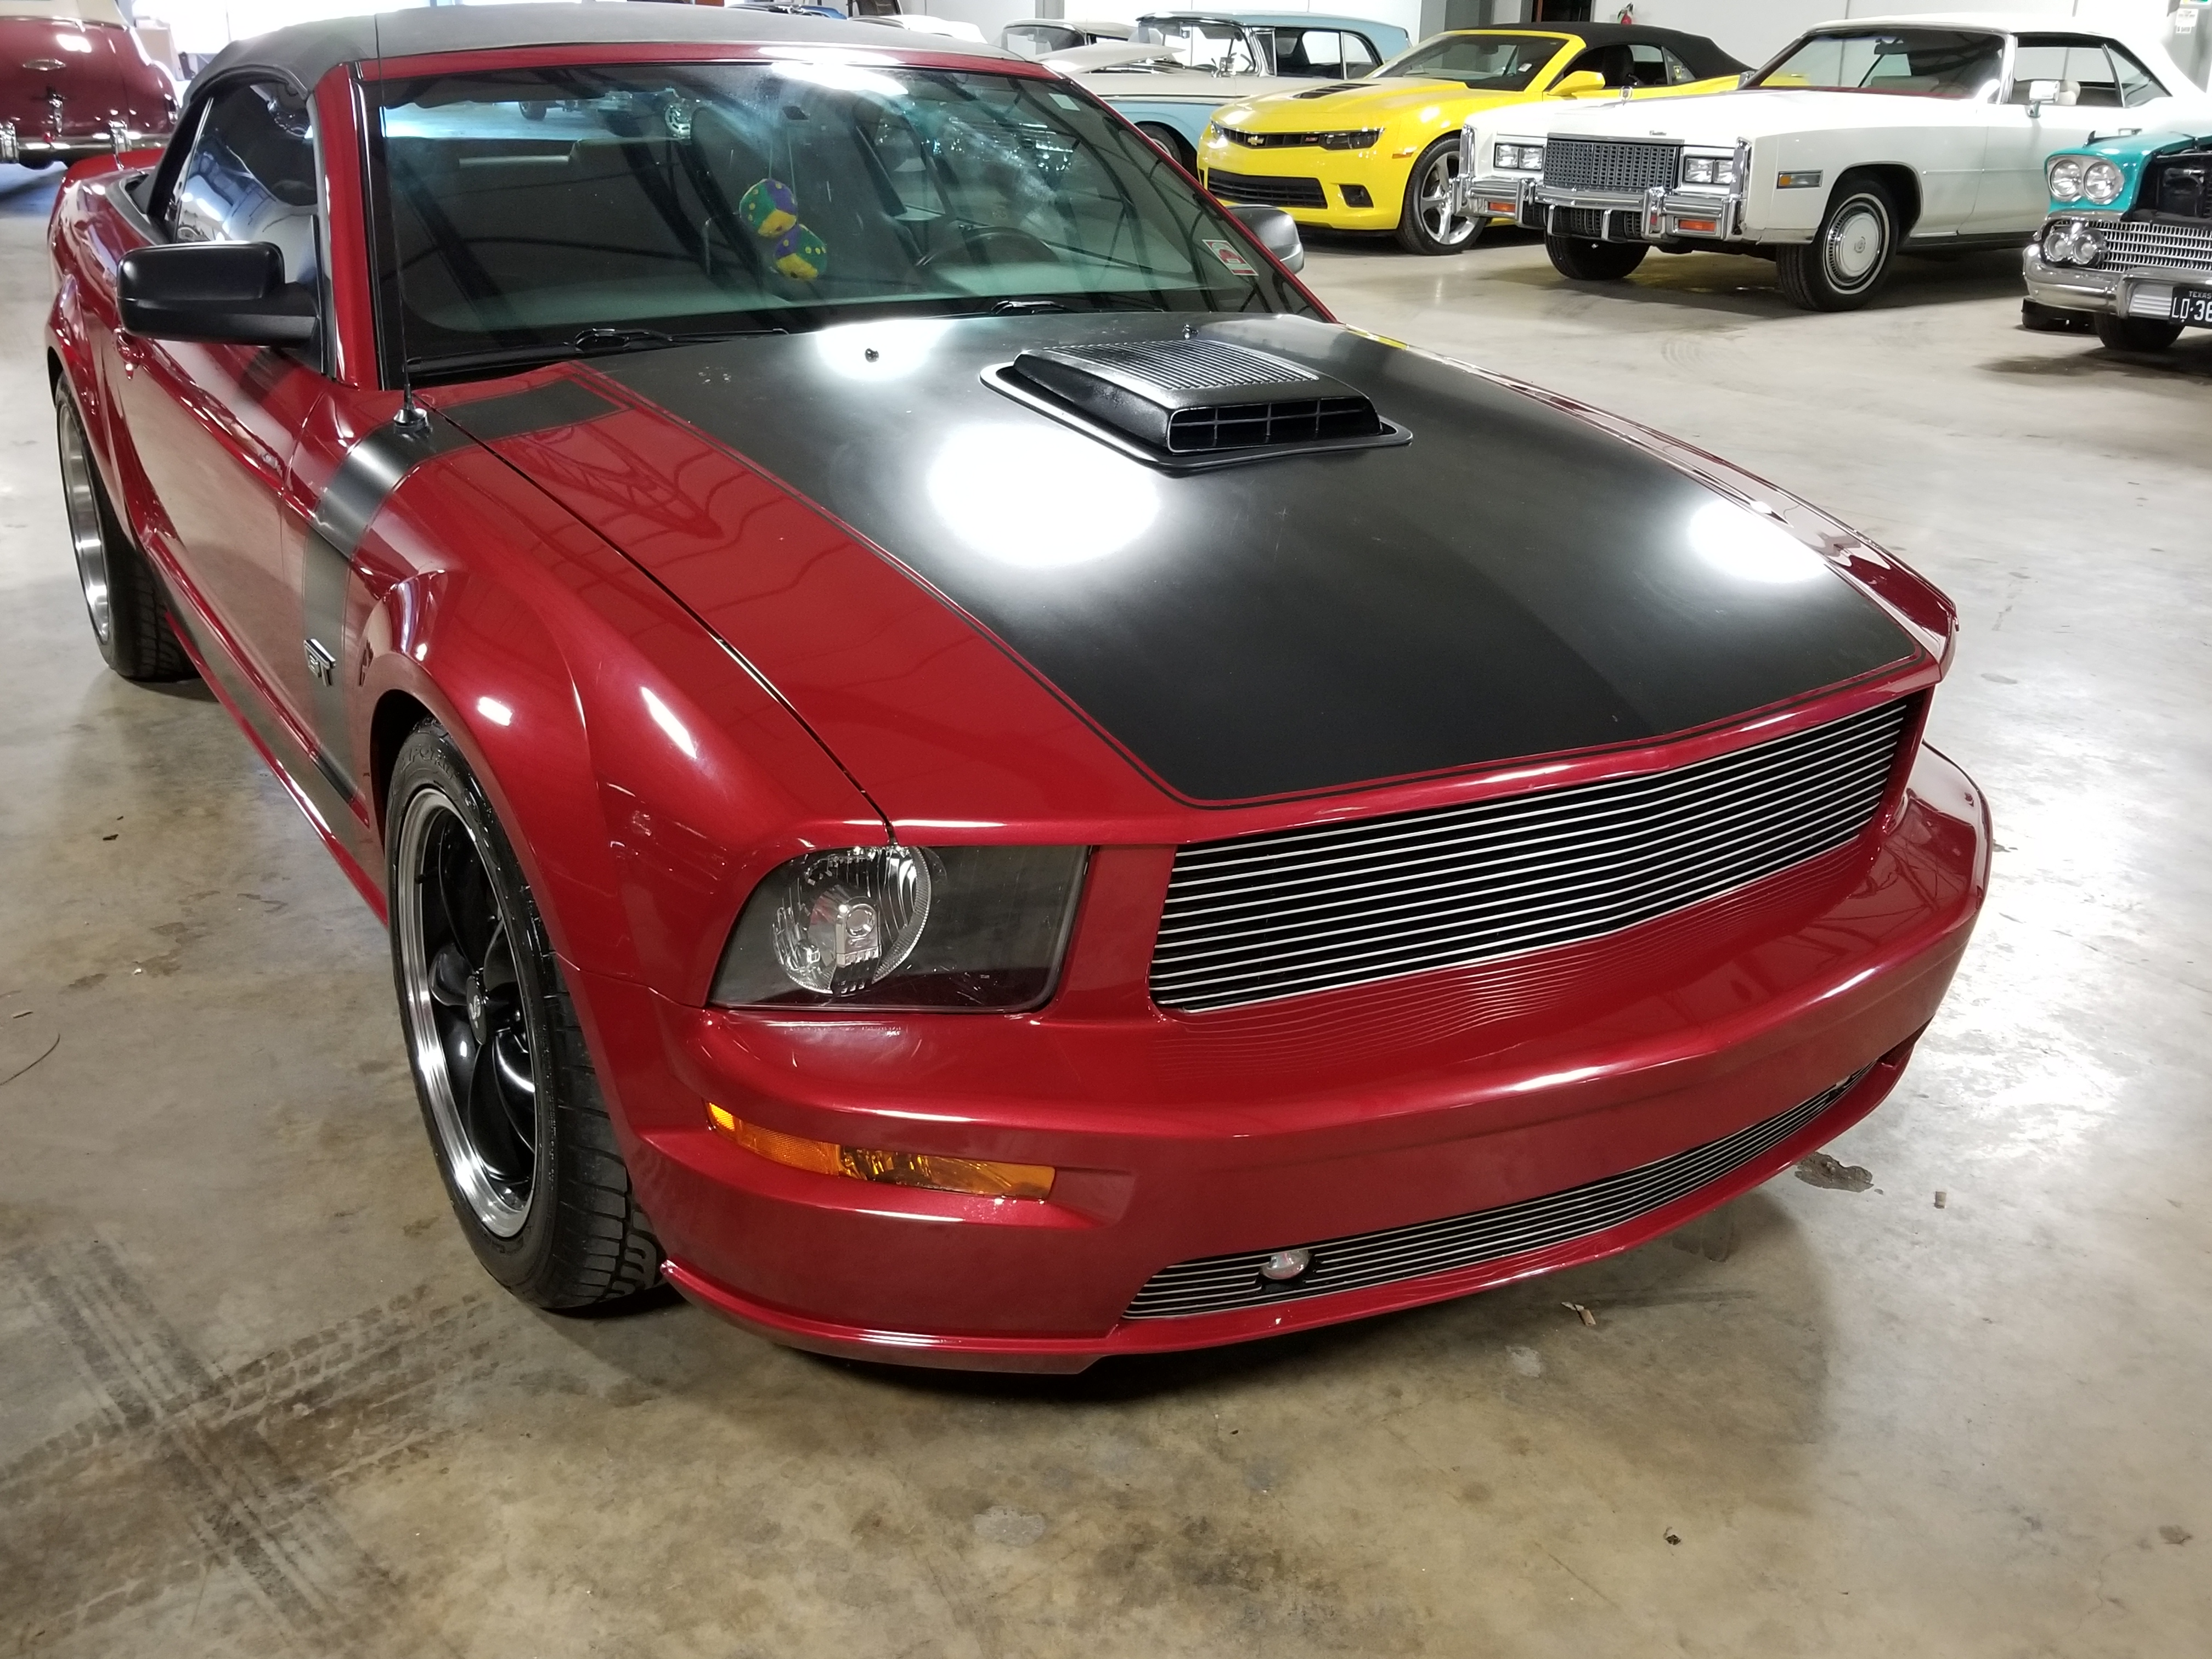 12th image of a 2008 ford mustang gtr